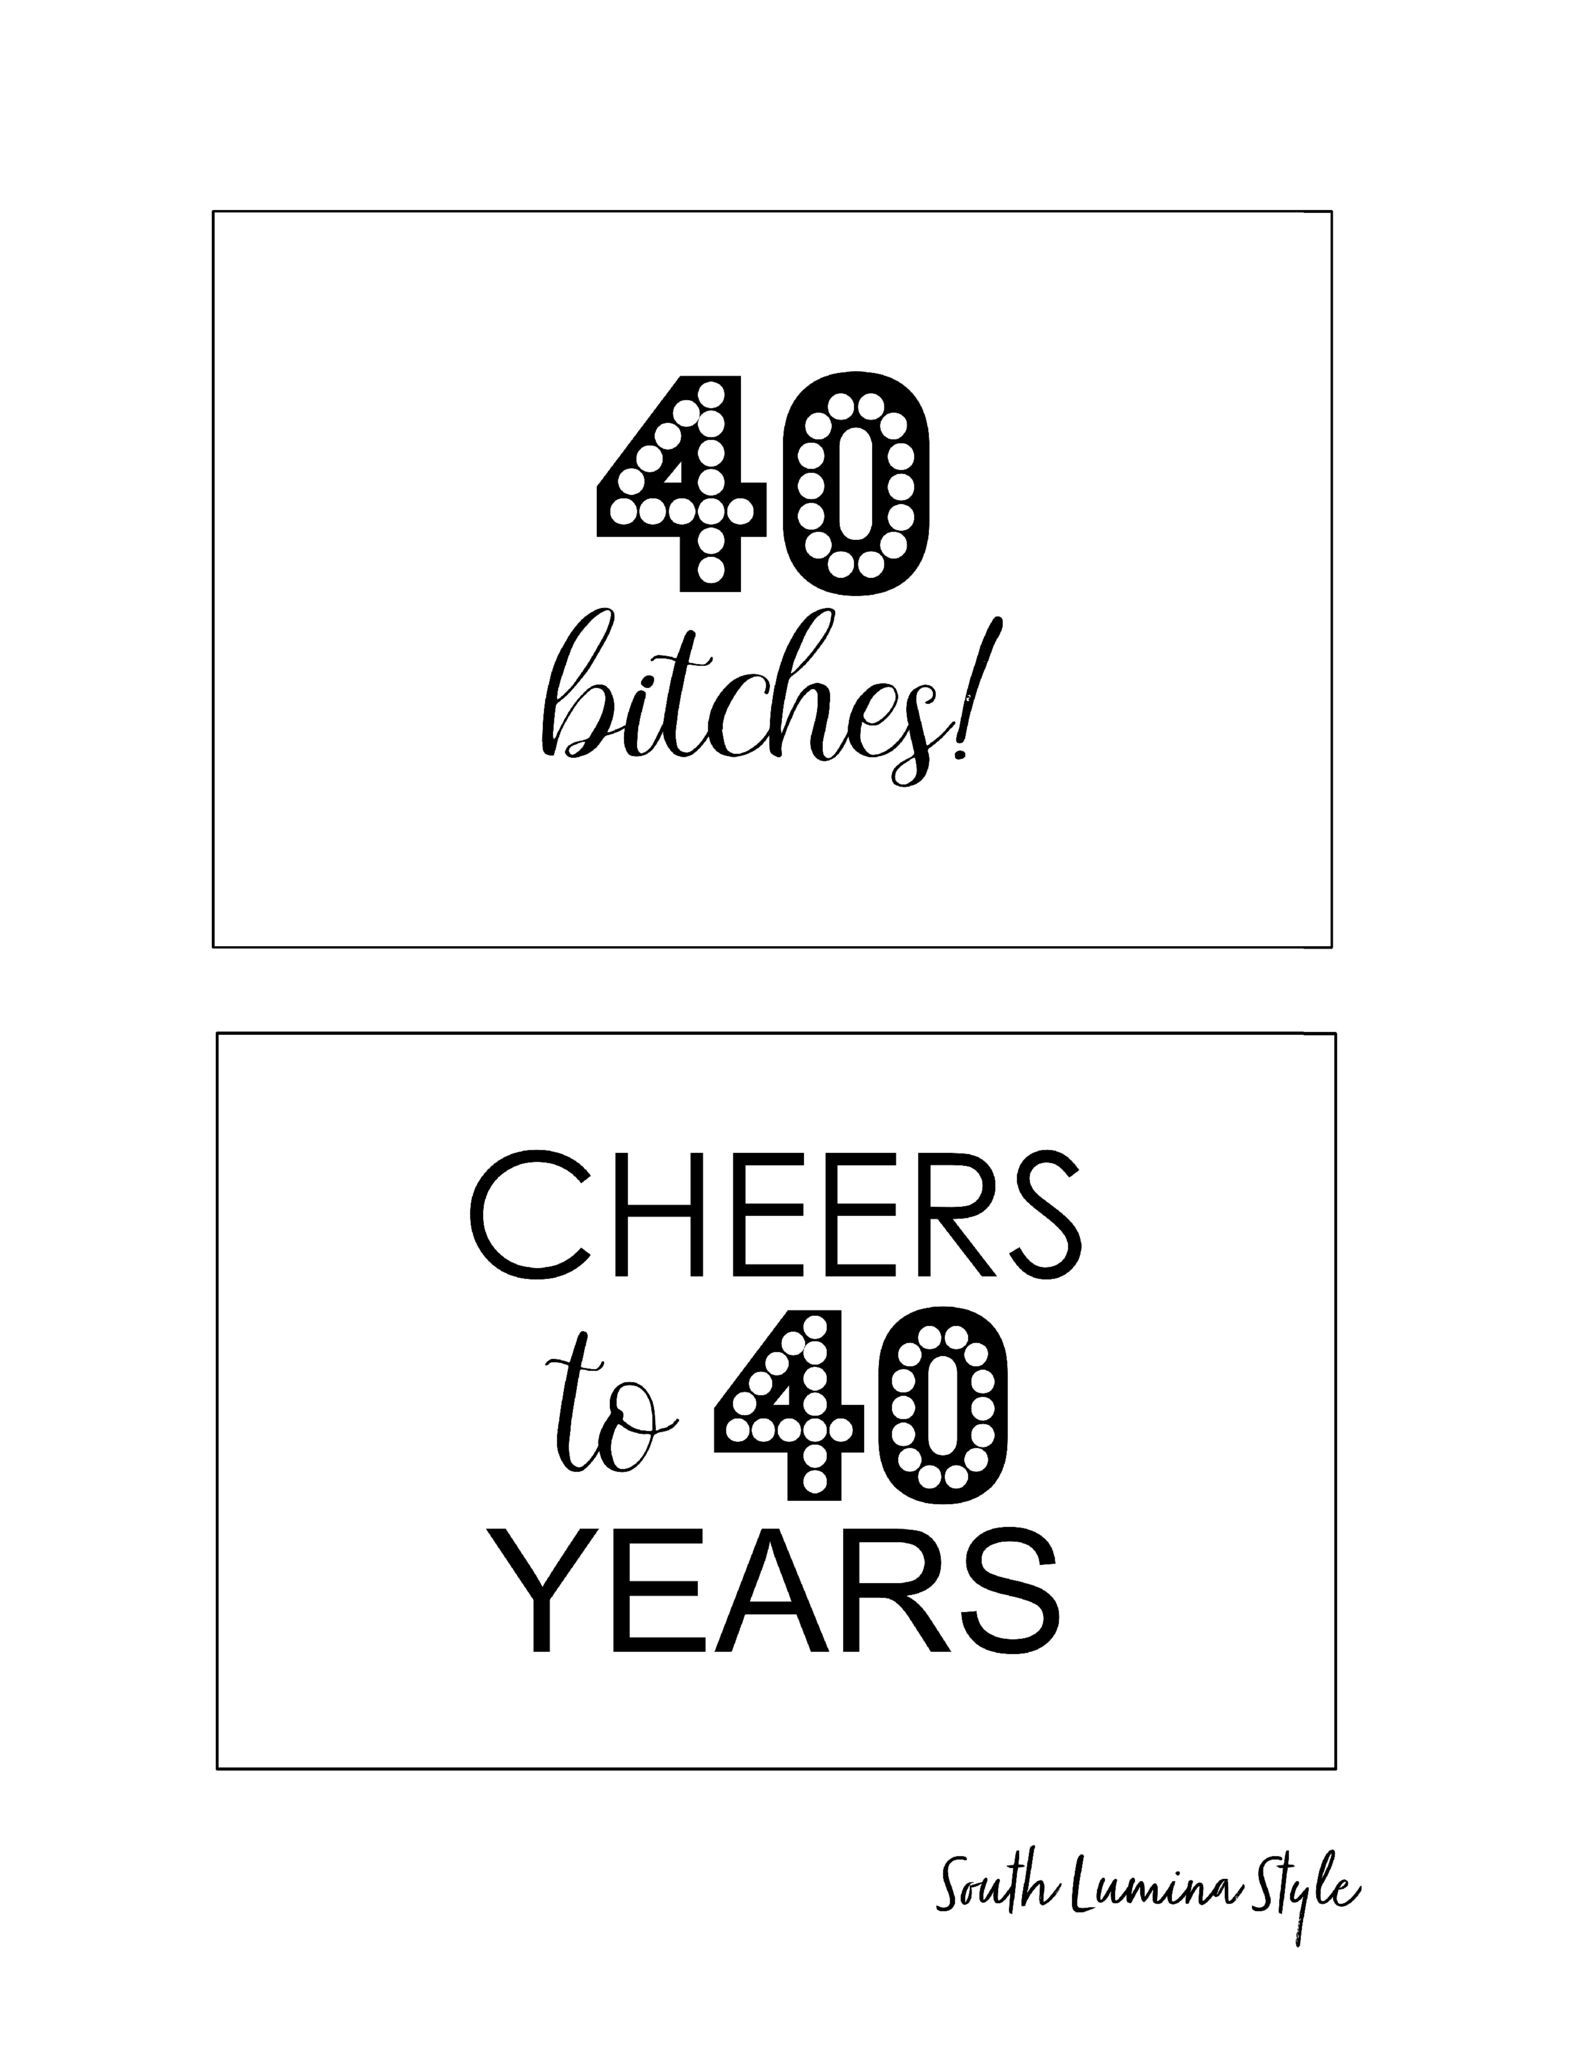 Diy Printable Adult Birthday Party Signs   Party Time   Pinterest - Free Printable Party Signs